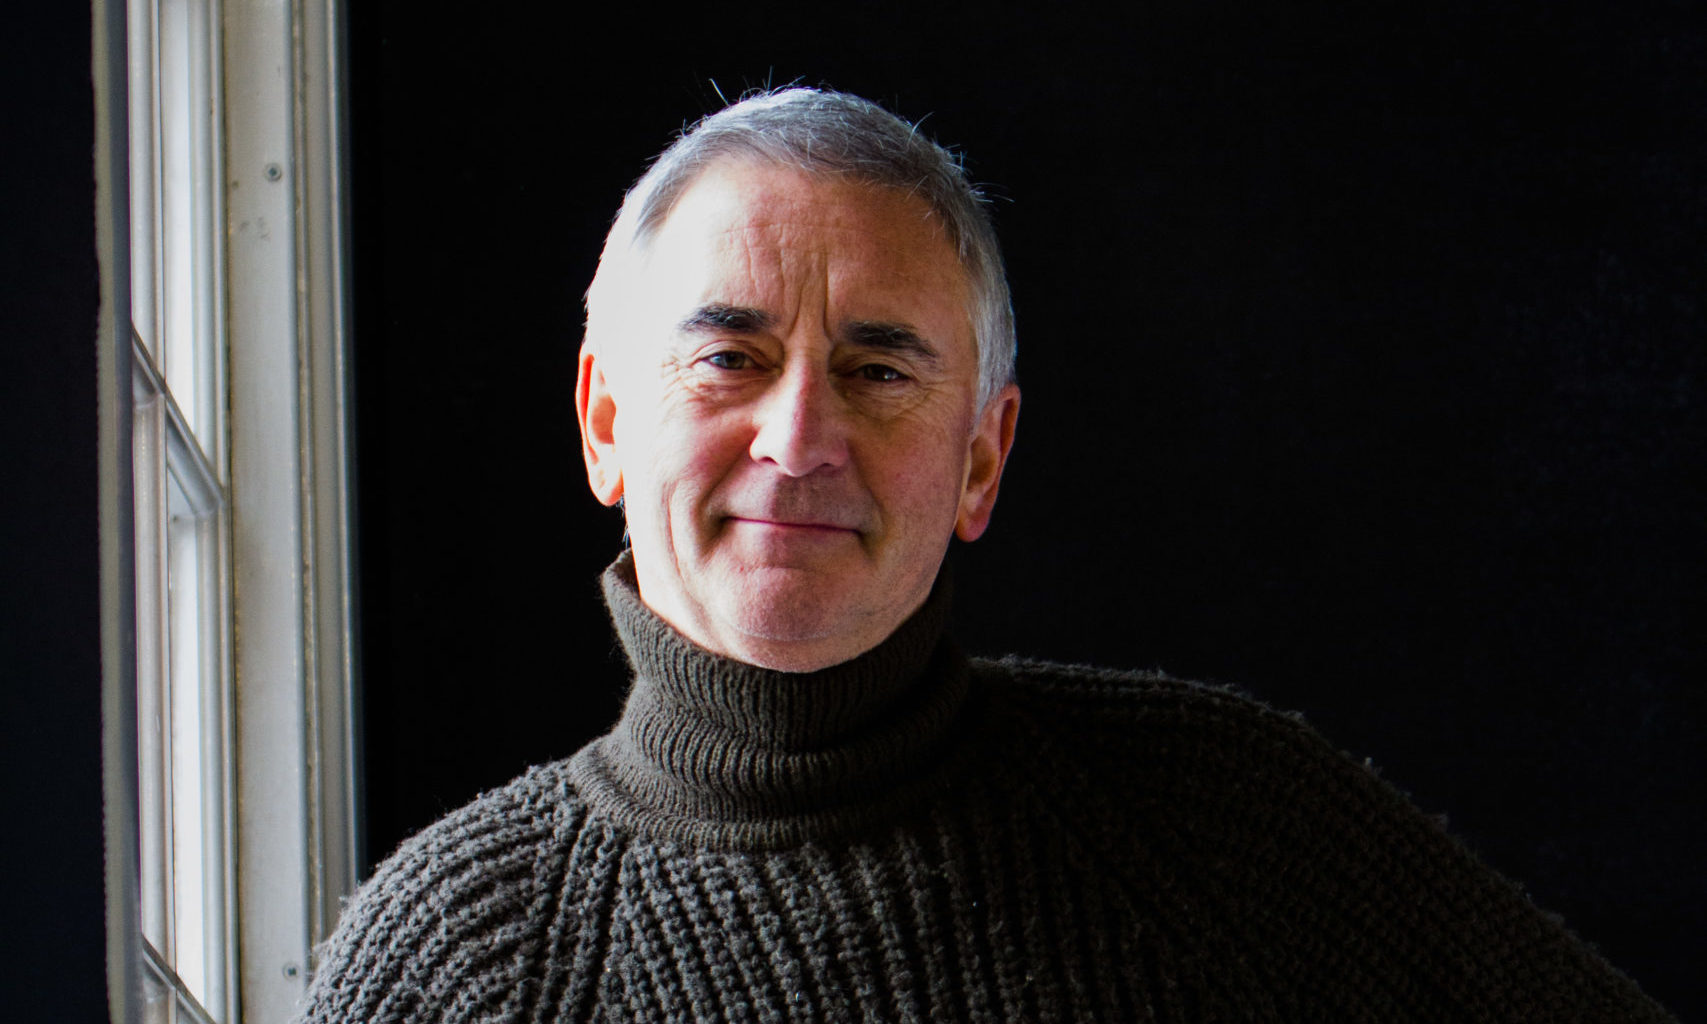 Crieff actor Denis Lawson has thrown his support behind the SOFA project to be run by Strathearn Artspace.